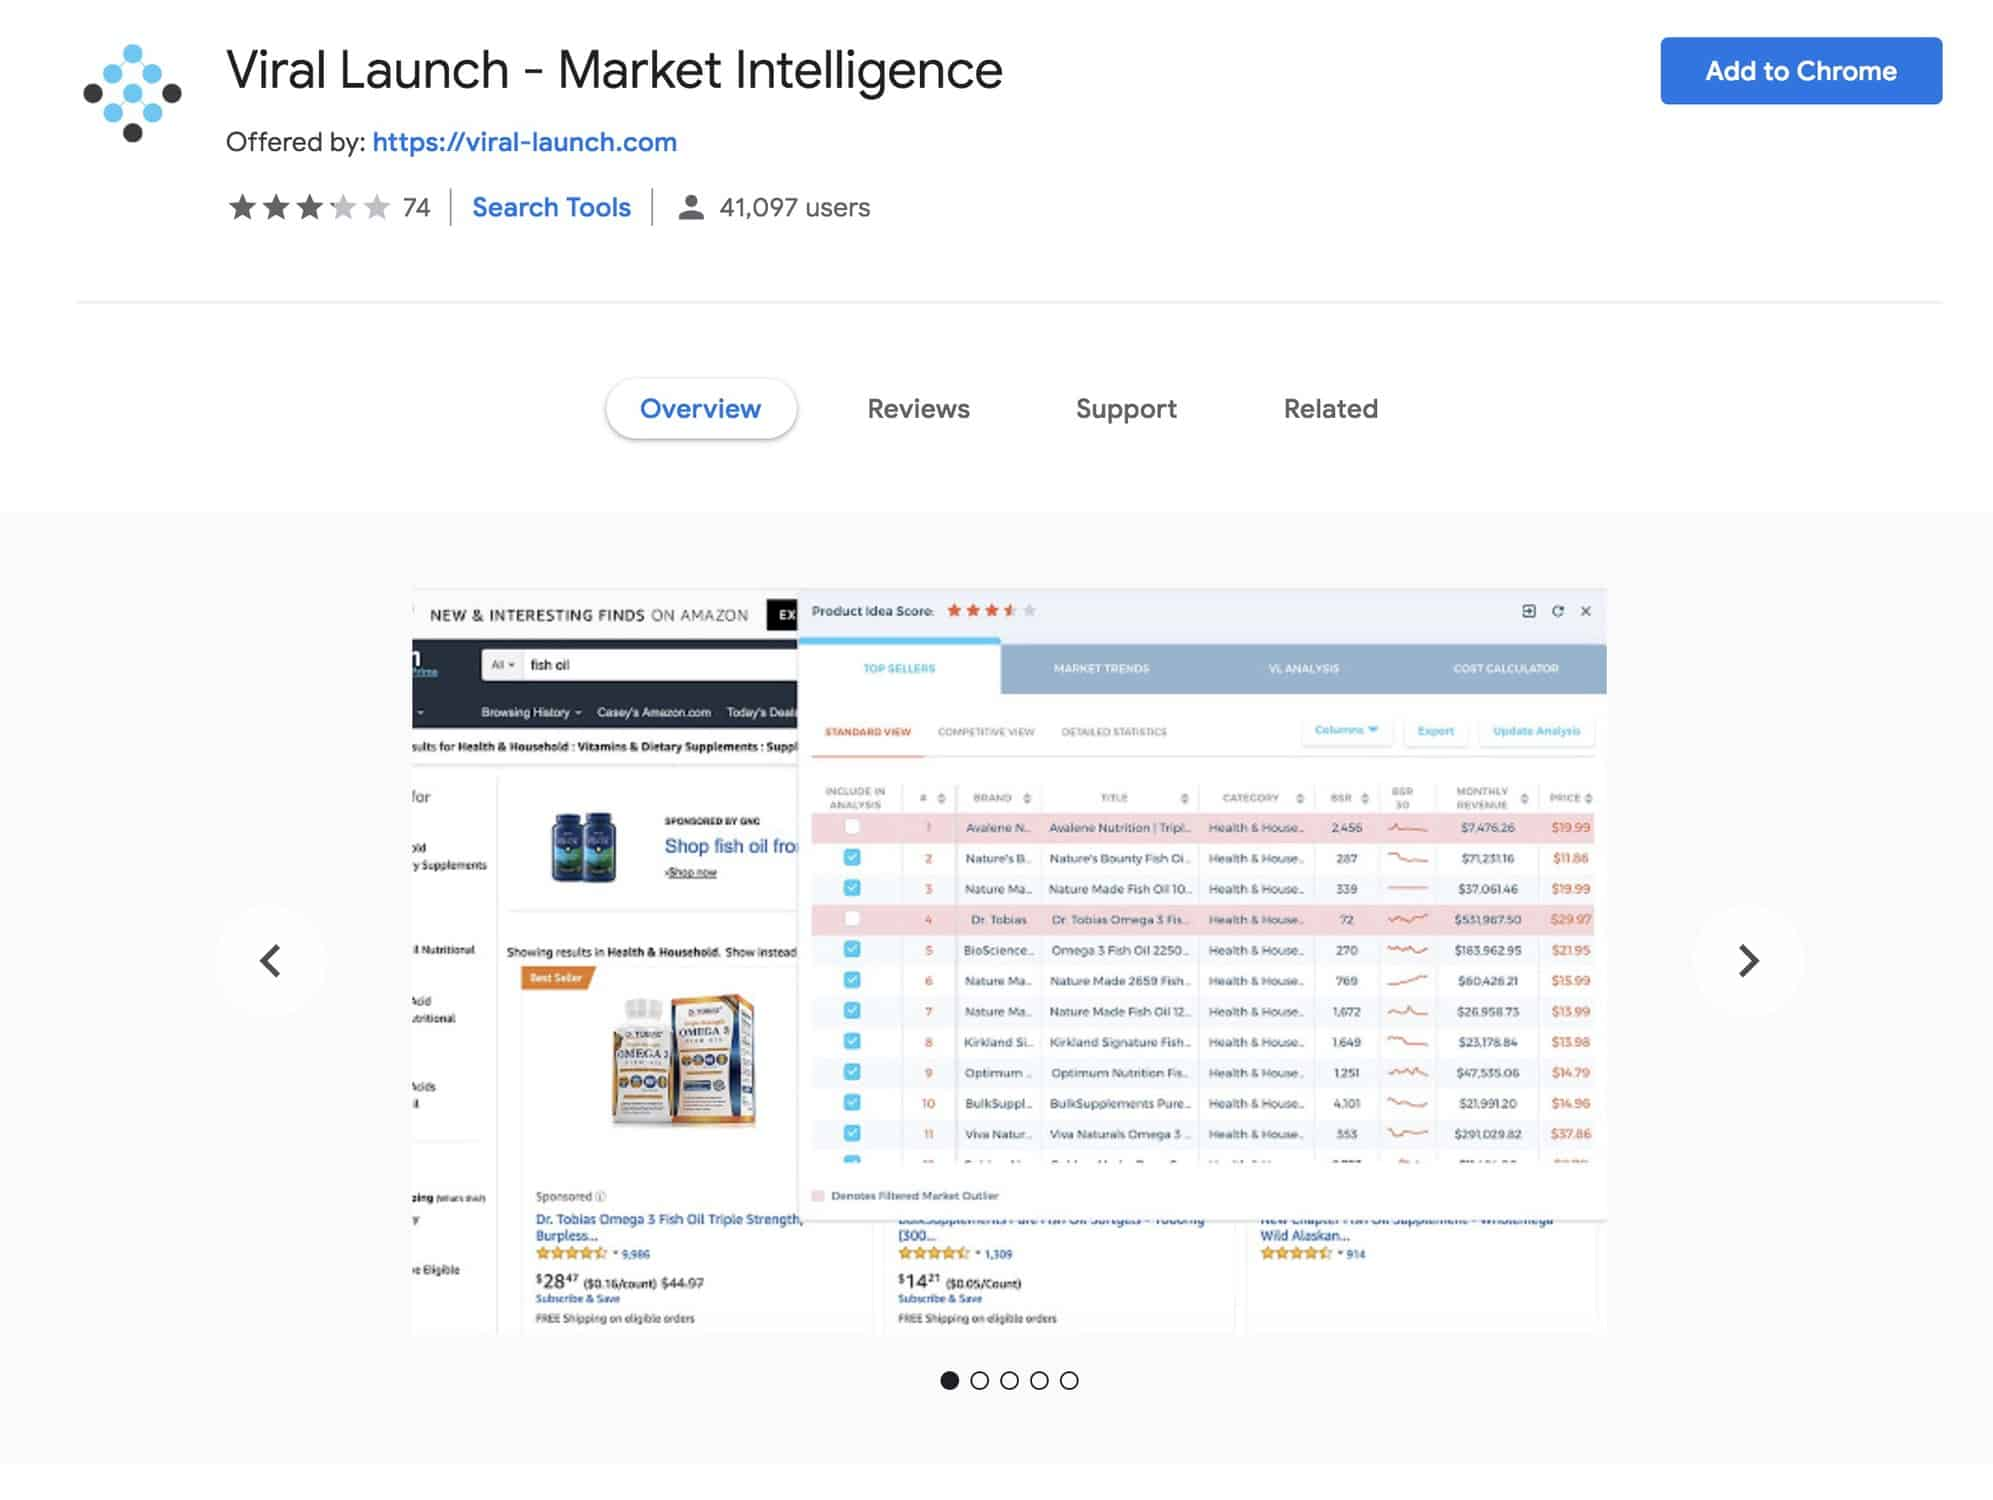 Viral Launch Market Intelligence